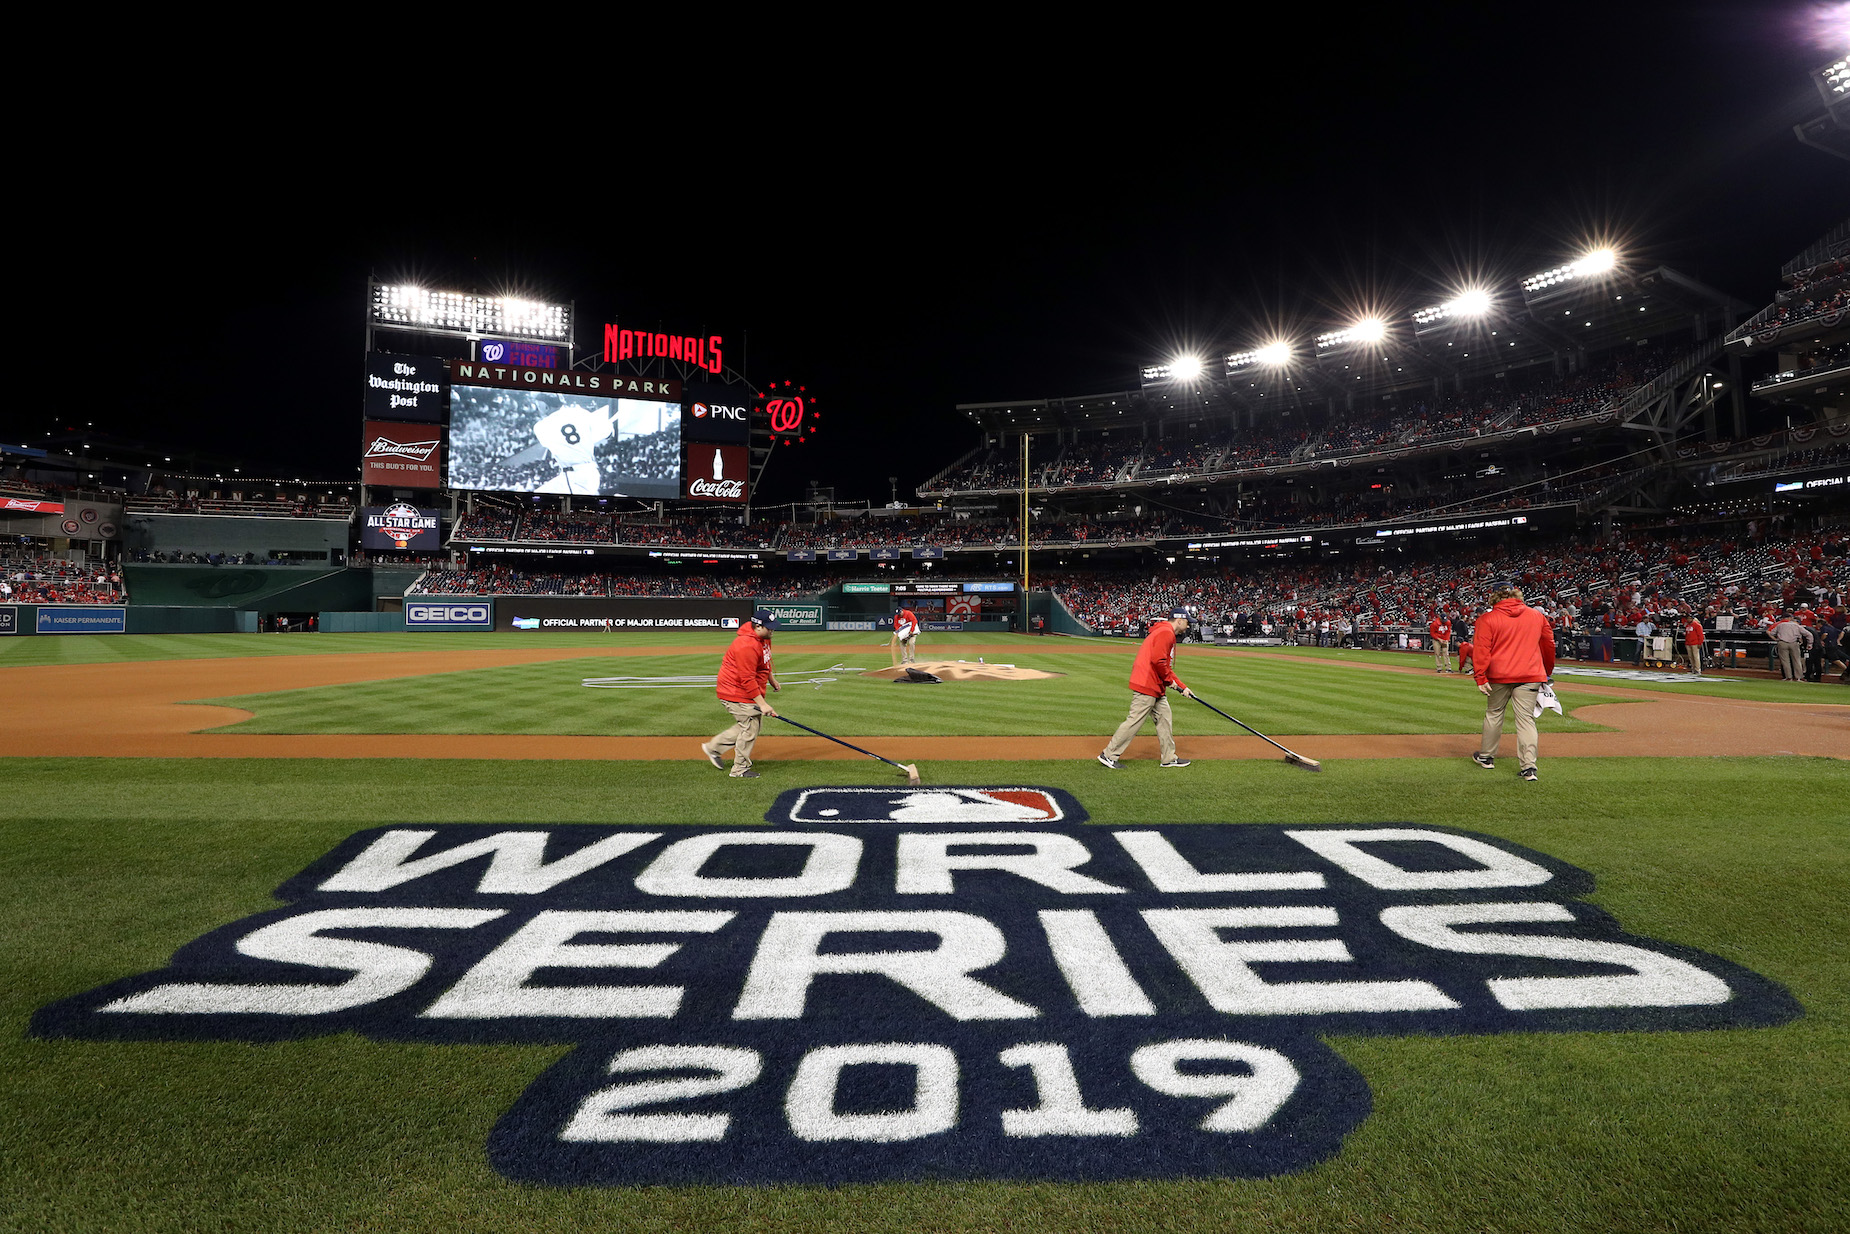 How did the World Series get its name?